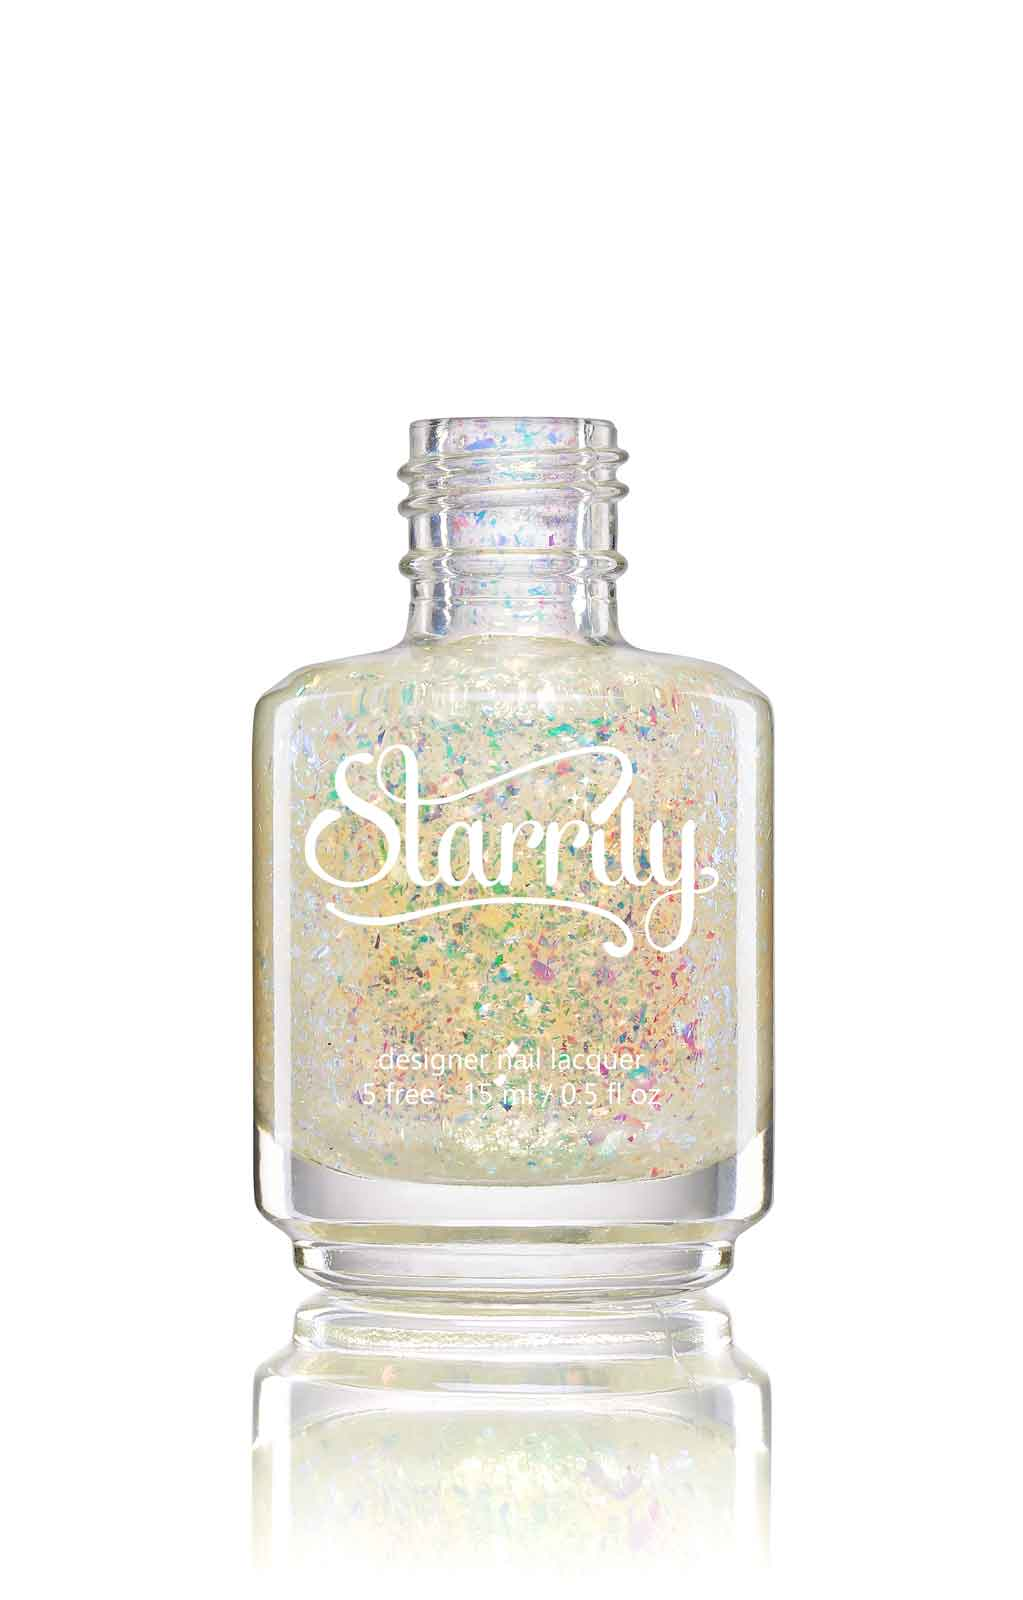 Starrily Alchemy - Amazing color changing iridescent polish, flips from red, green, orange. High quality nail polish. Made in the USA! Cruelty Free and Vegan.